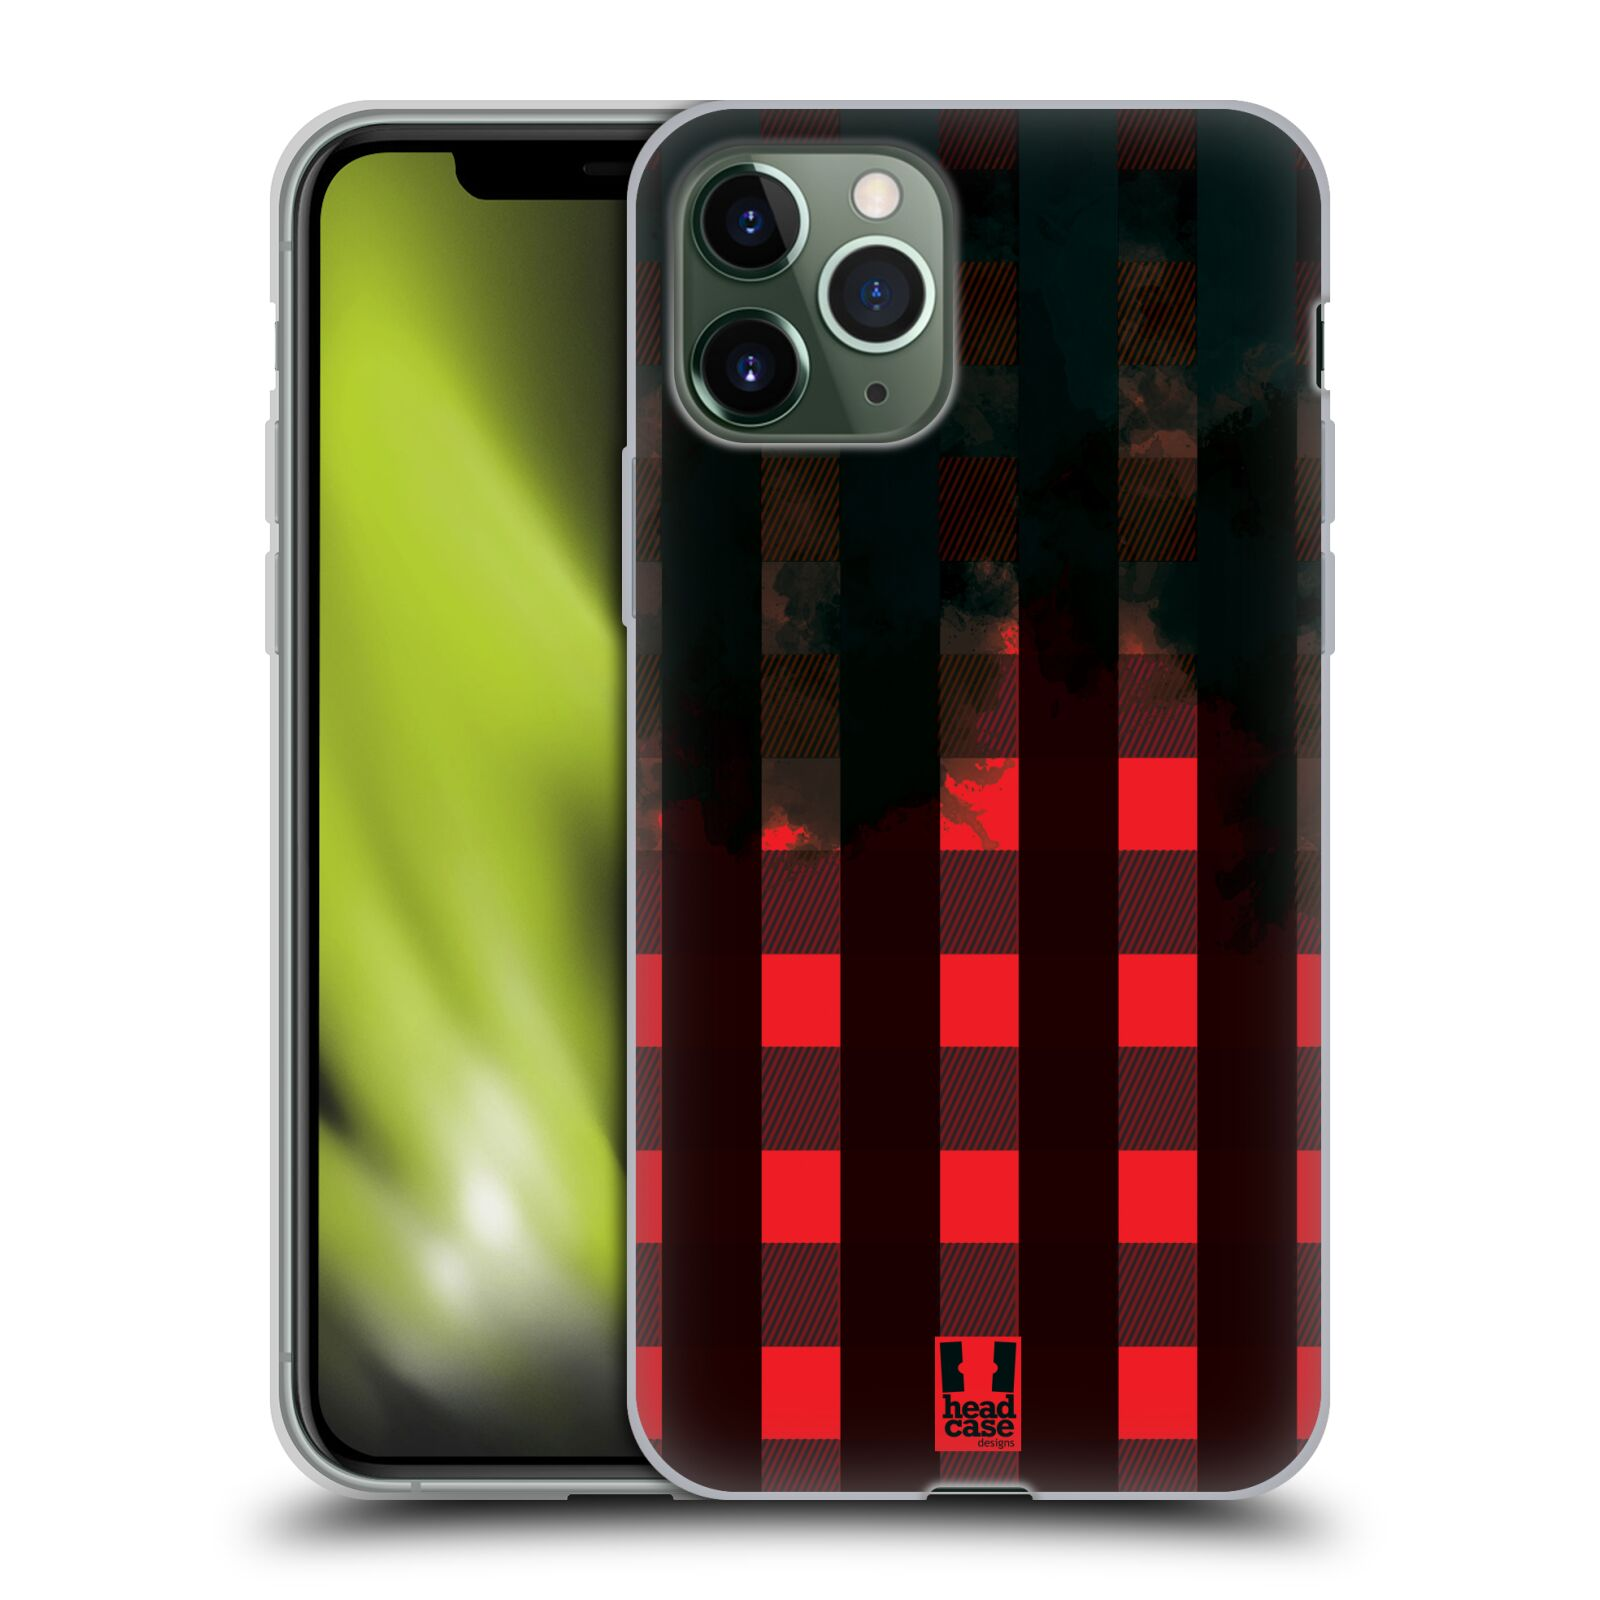 dreveny kryt iphone x - Silikonové pouzdro na mobil Apple iPhone 11 Pro - Head Case - FLANEL RED BLACK